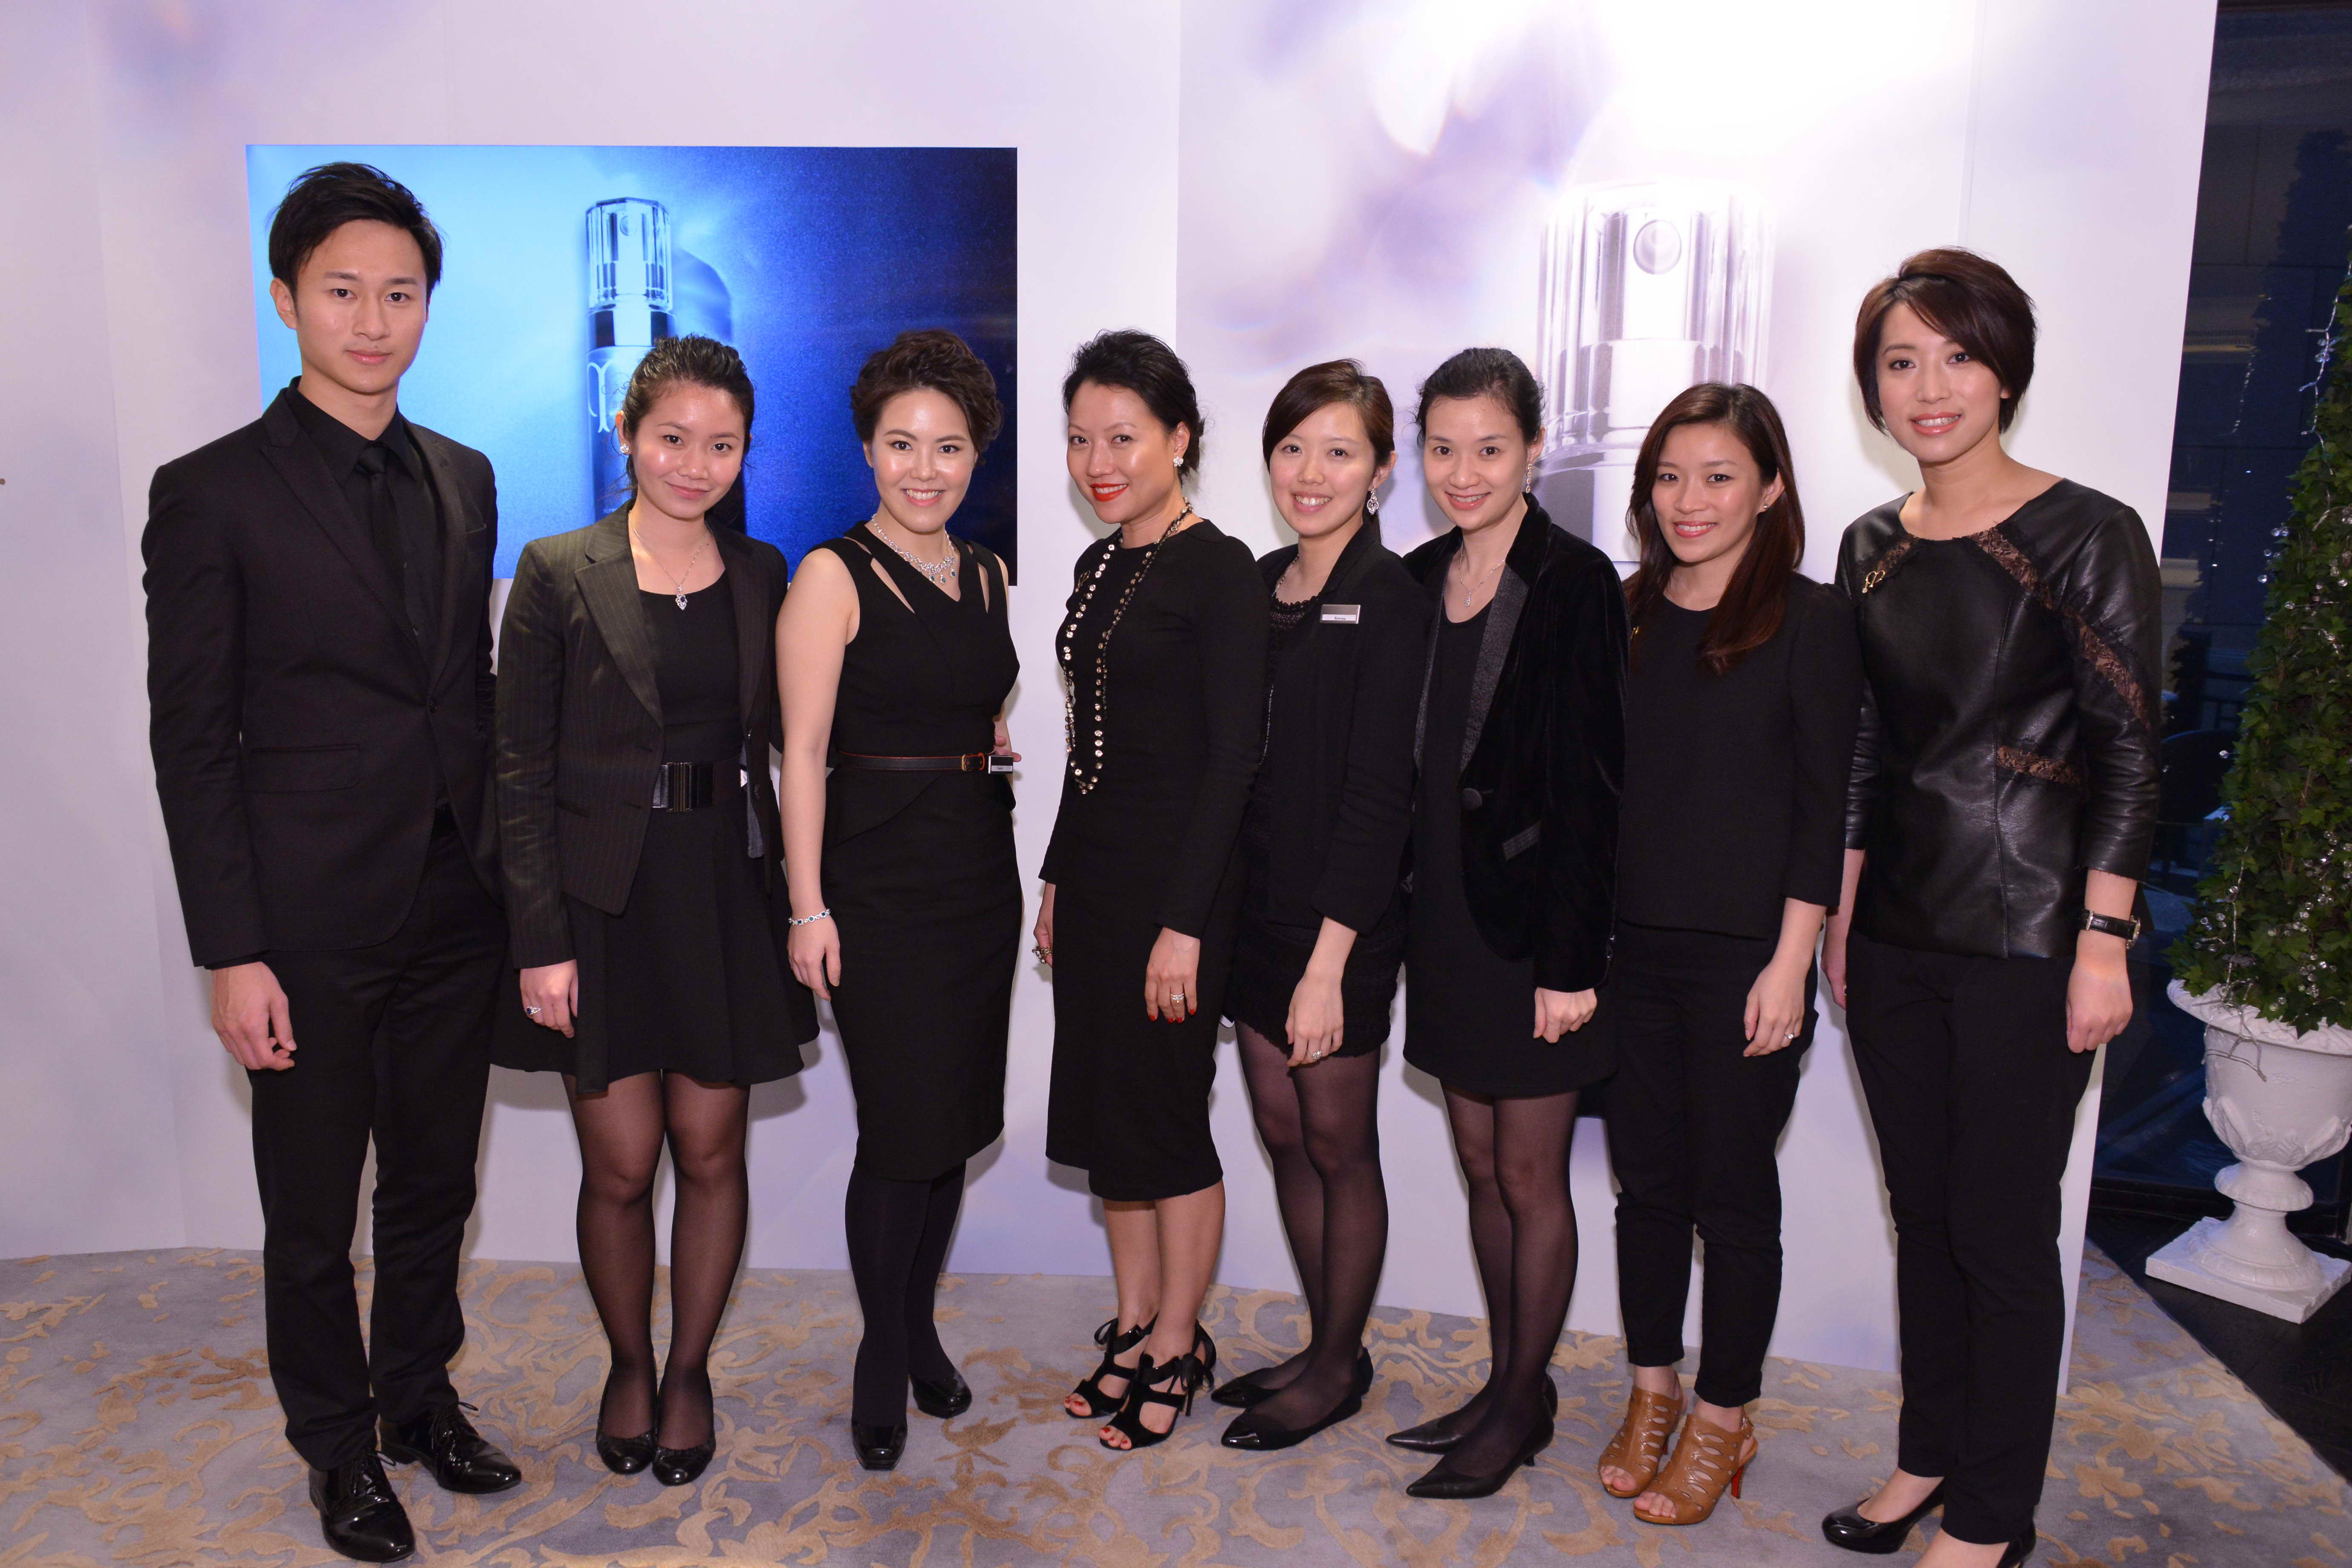 Bee's Diamonds - Diamond appreciation workshop at Cle de Peau Beaute product launch